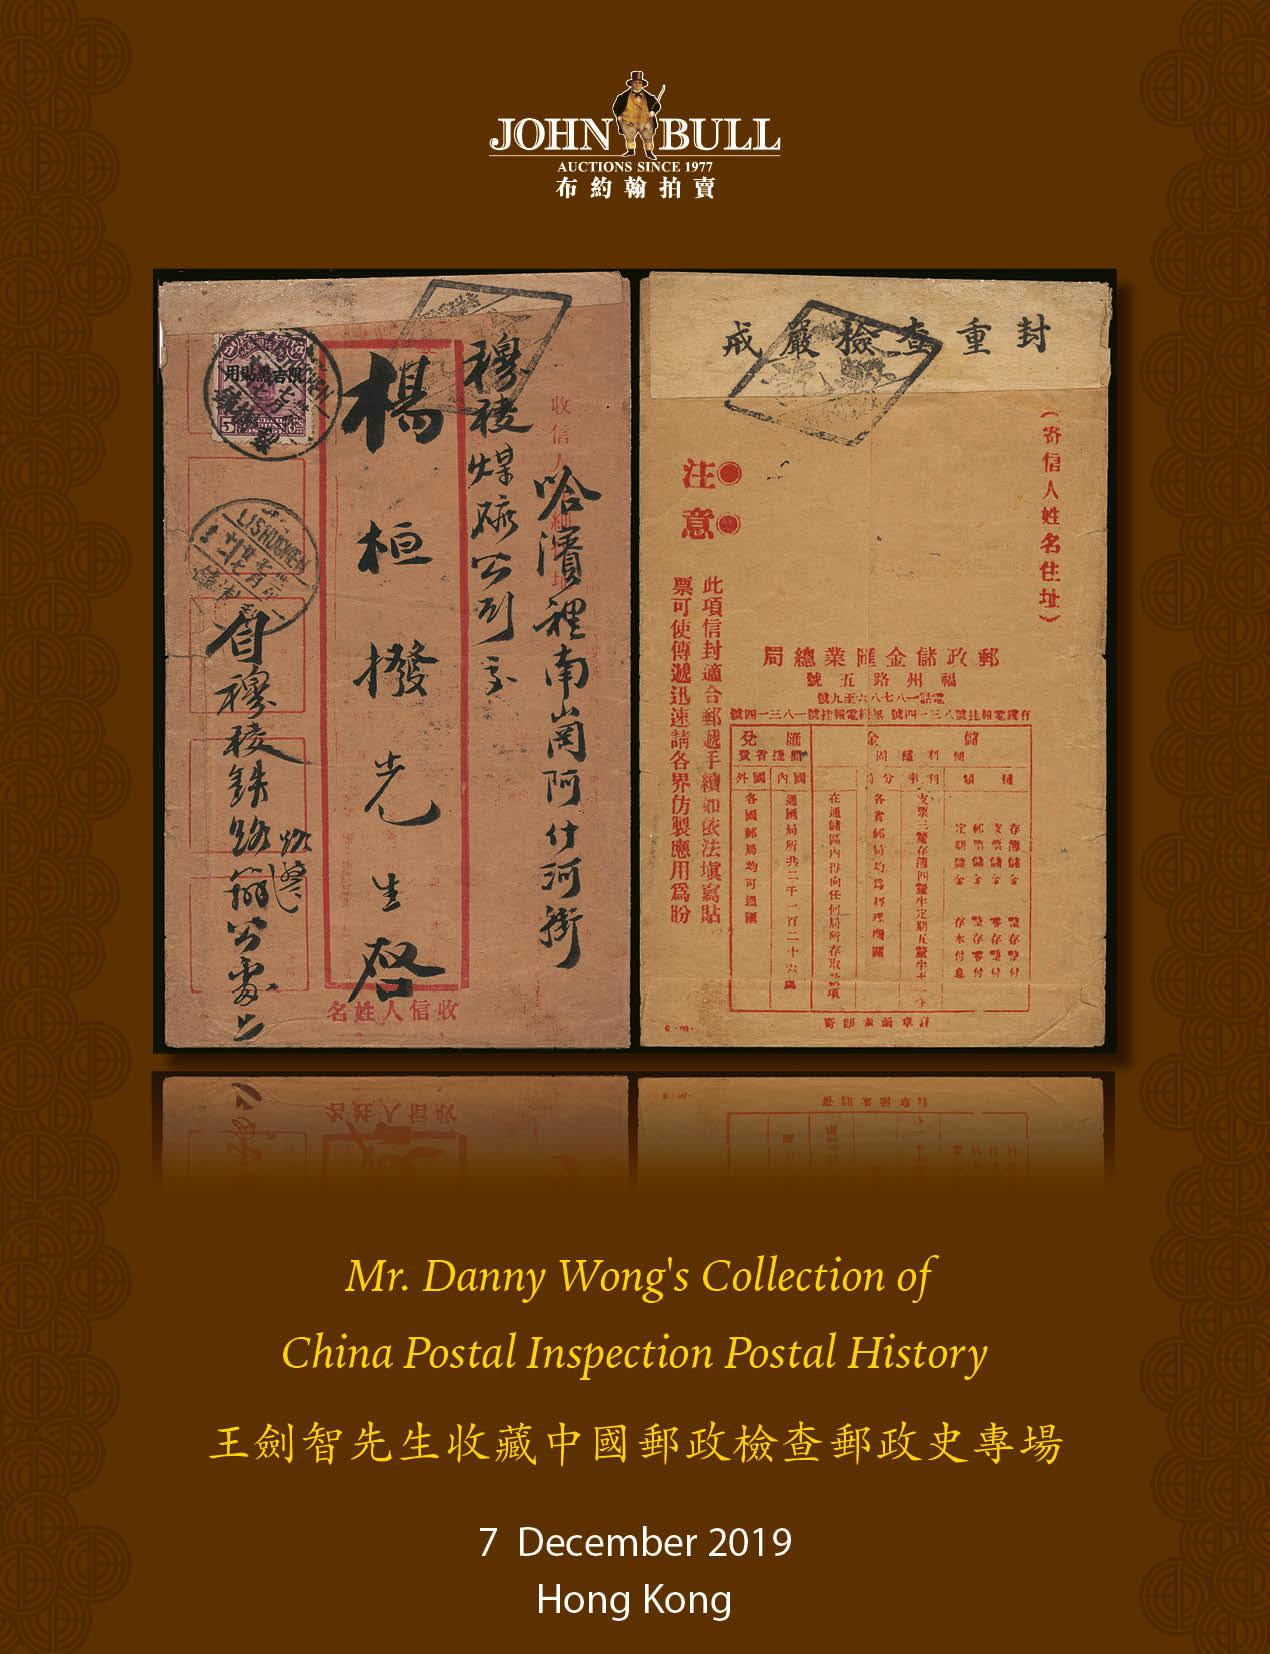 Mr. Danny Wong's Collection of China Postal Inspection Postal History